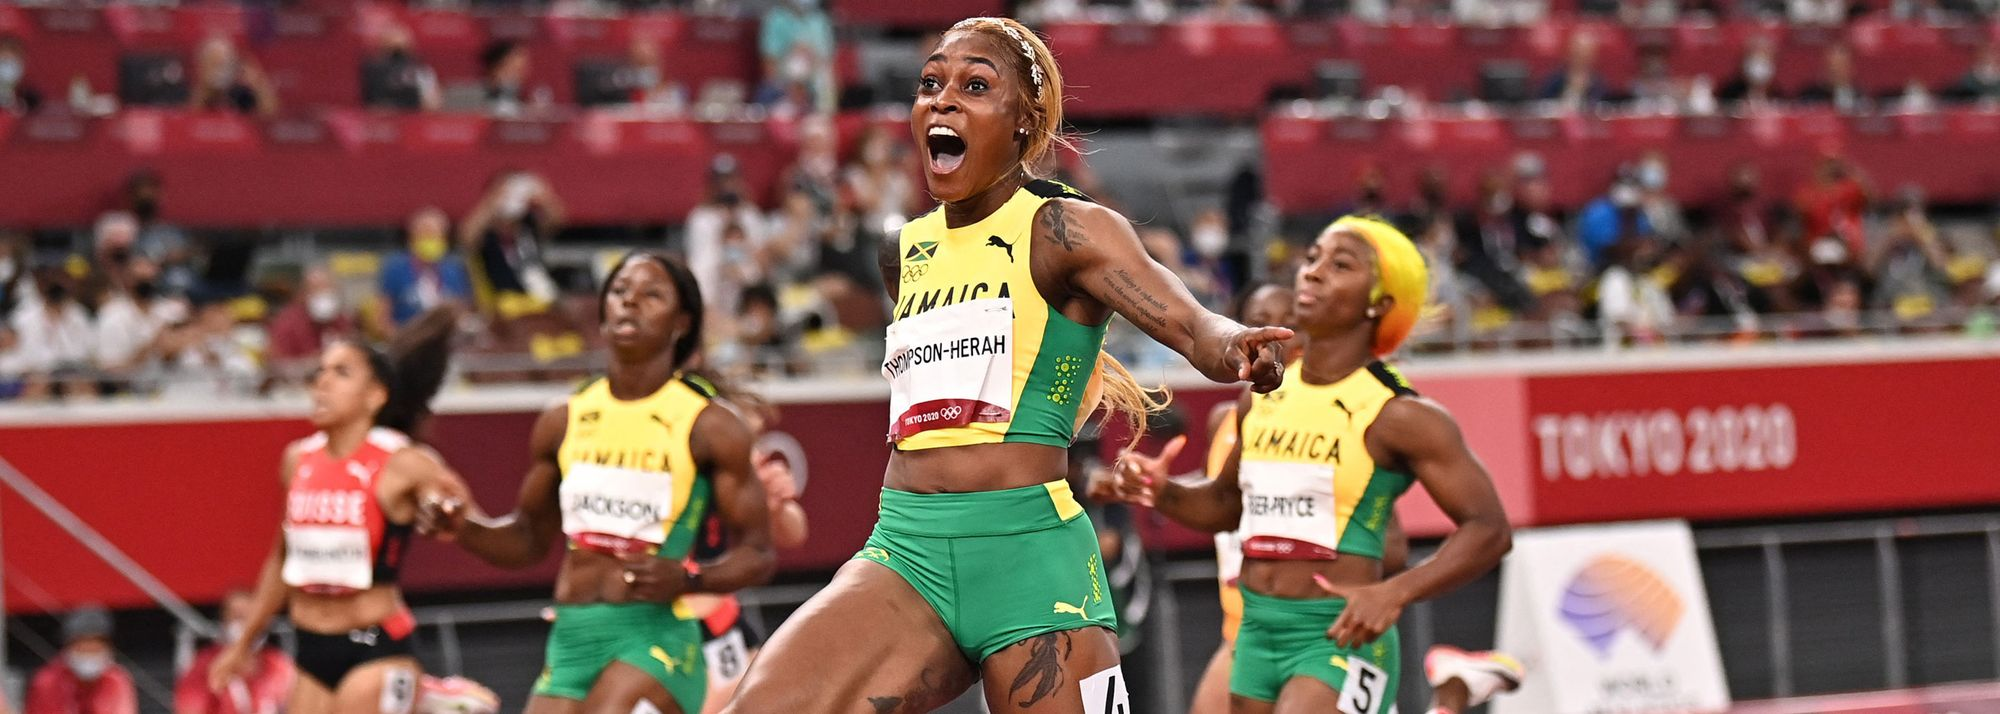 In one of the greatest sprint races of all-time, Elaine Thompson-Herah stunned with an Olympic record of 10.61 (-0.6m/s) to retain her 100m title at the Tokyo 2020 Games on Saturday (31).